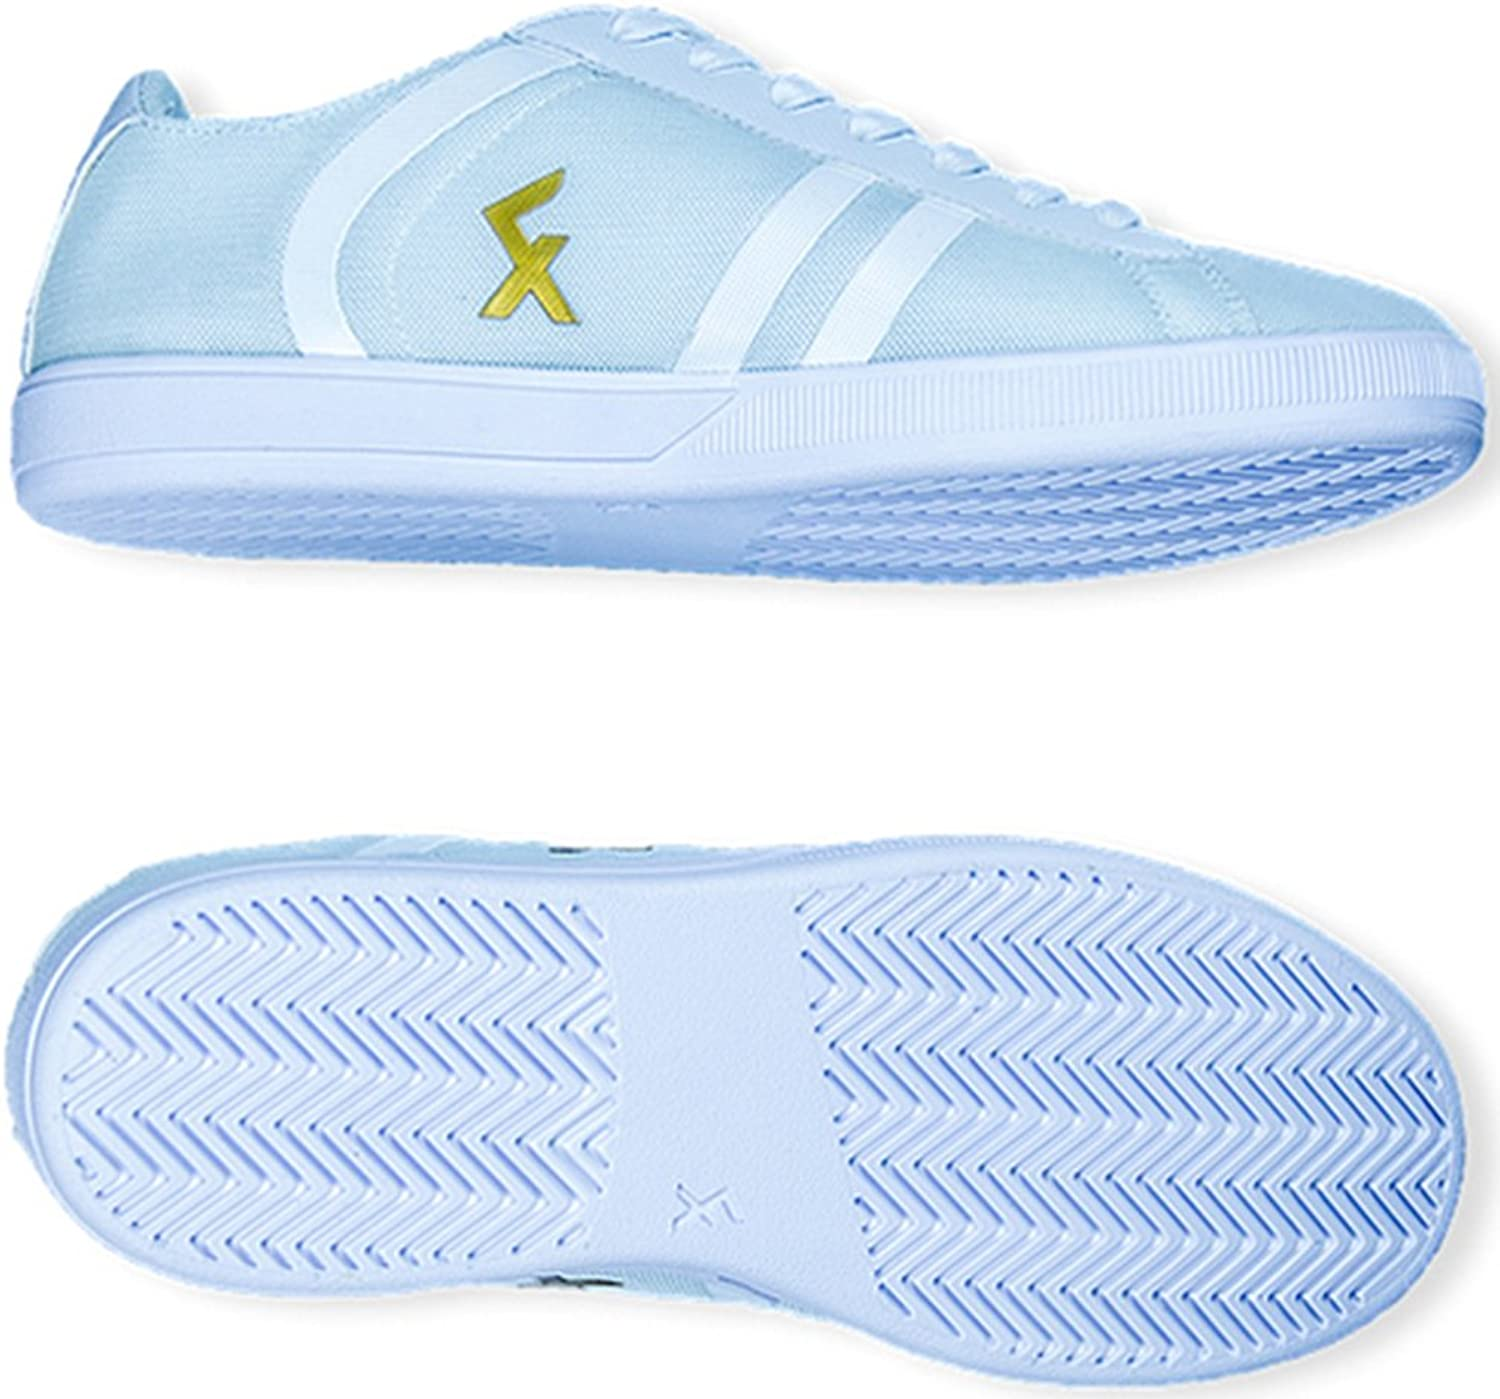 Explore II Freestyle and Street Football shoes Size 39 White